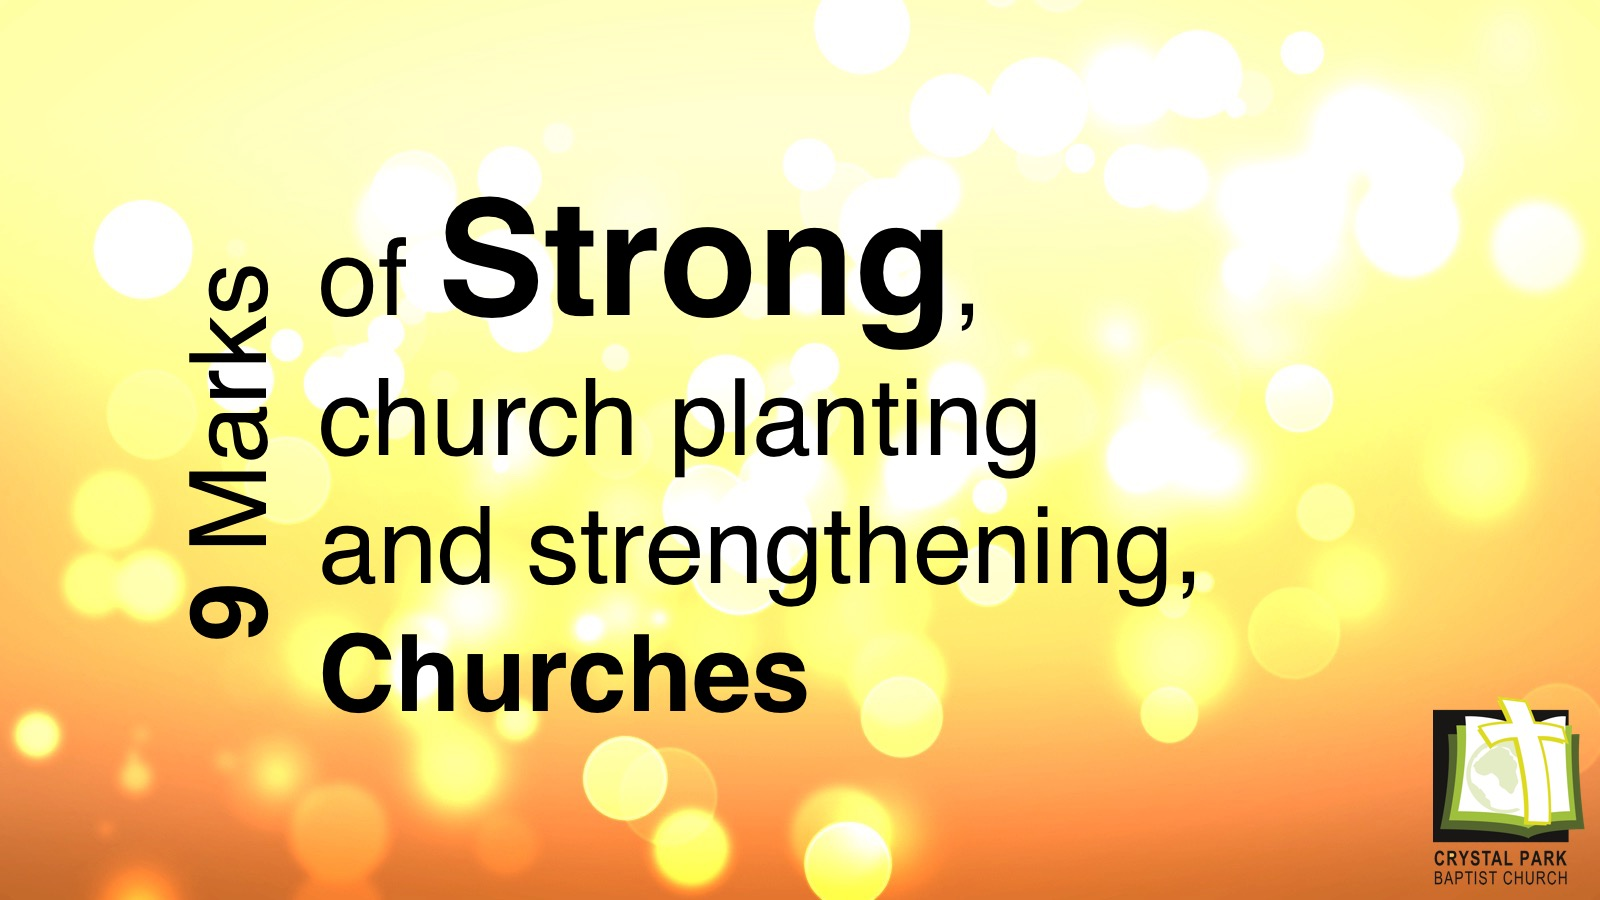 9 Marks of Strong church planting, and strengthening, Churches